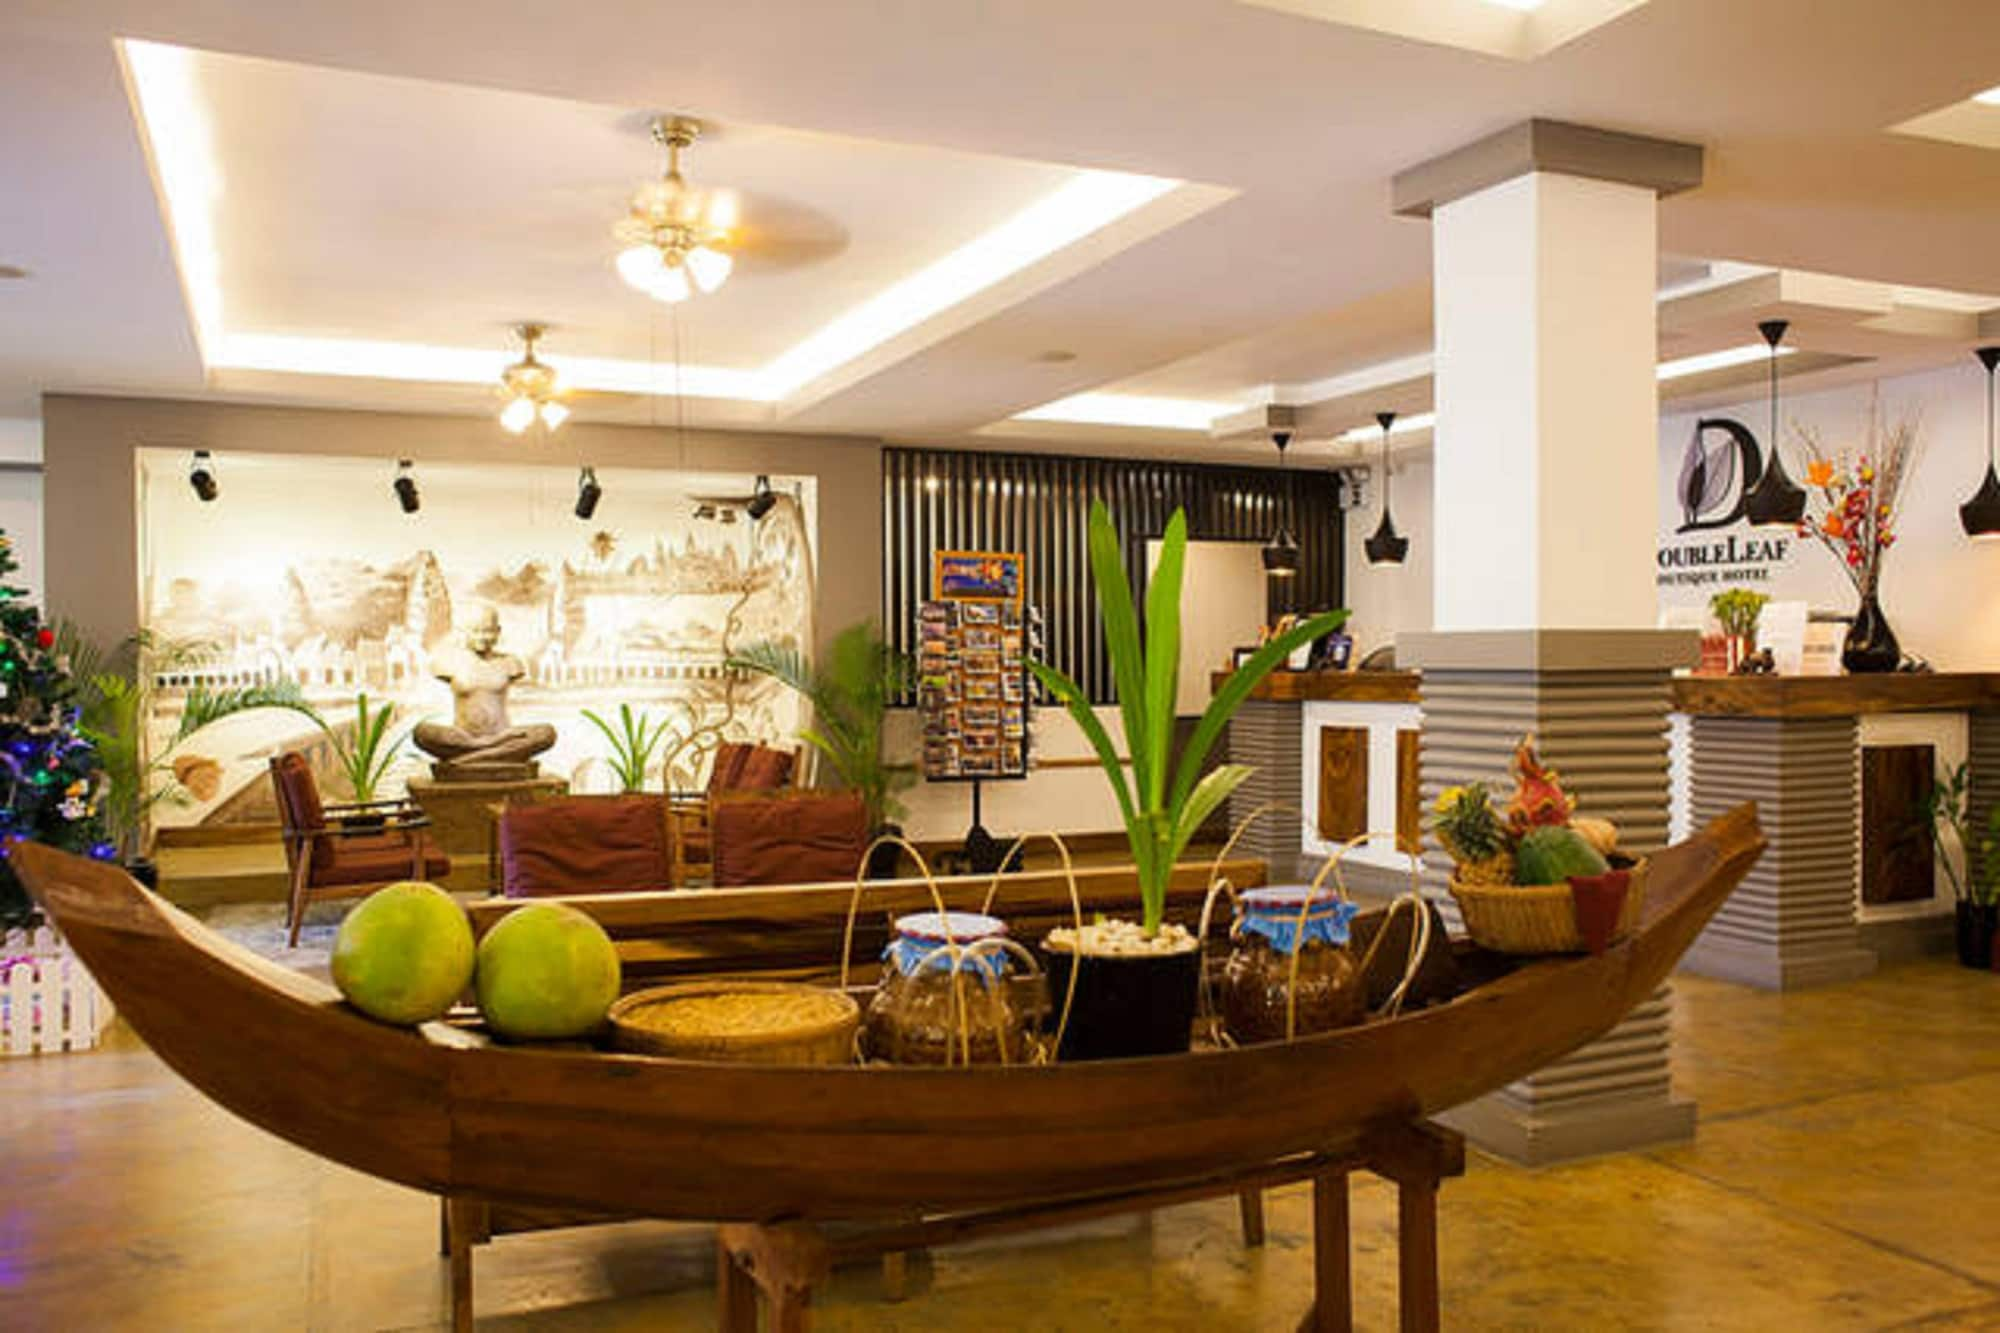 Double Leaf Boutique Hotel, Mean Chey